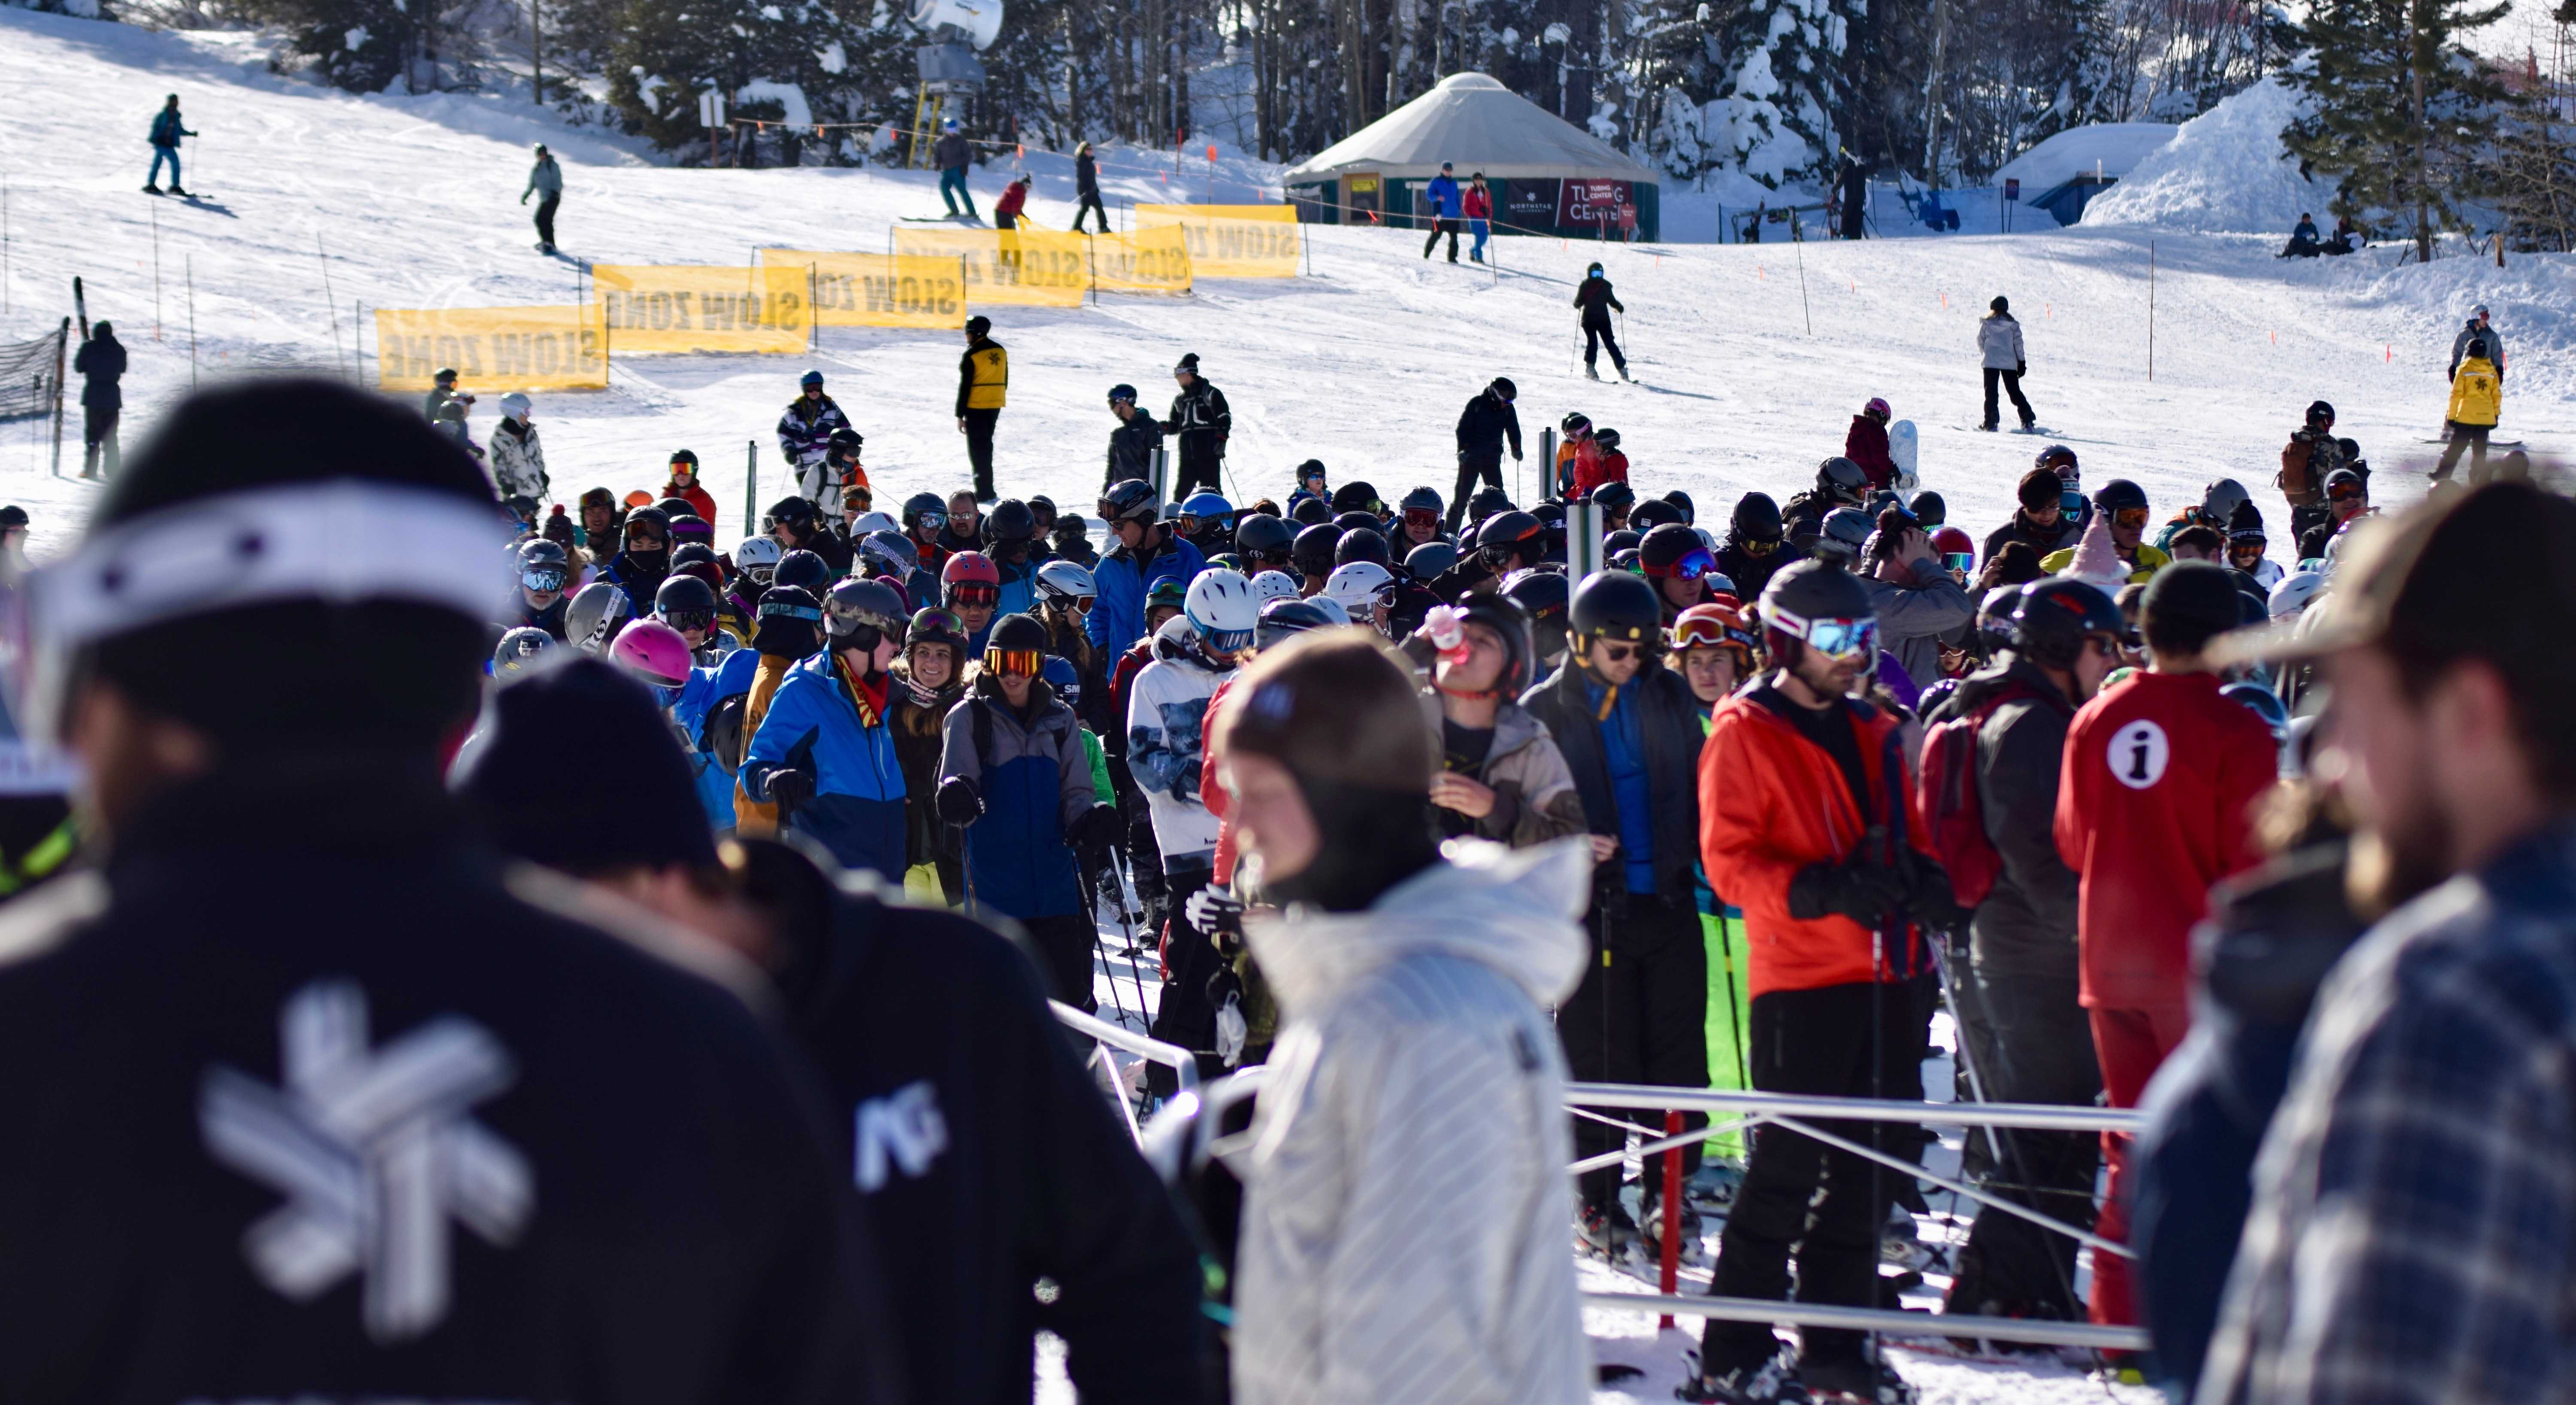 Keep Tahoe true: The significance of Tahoe's changing culture